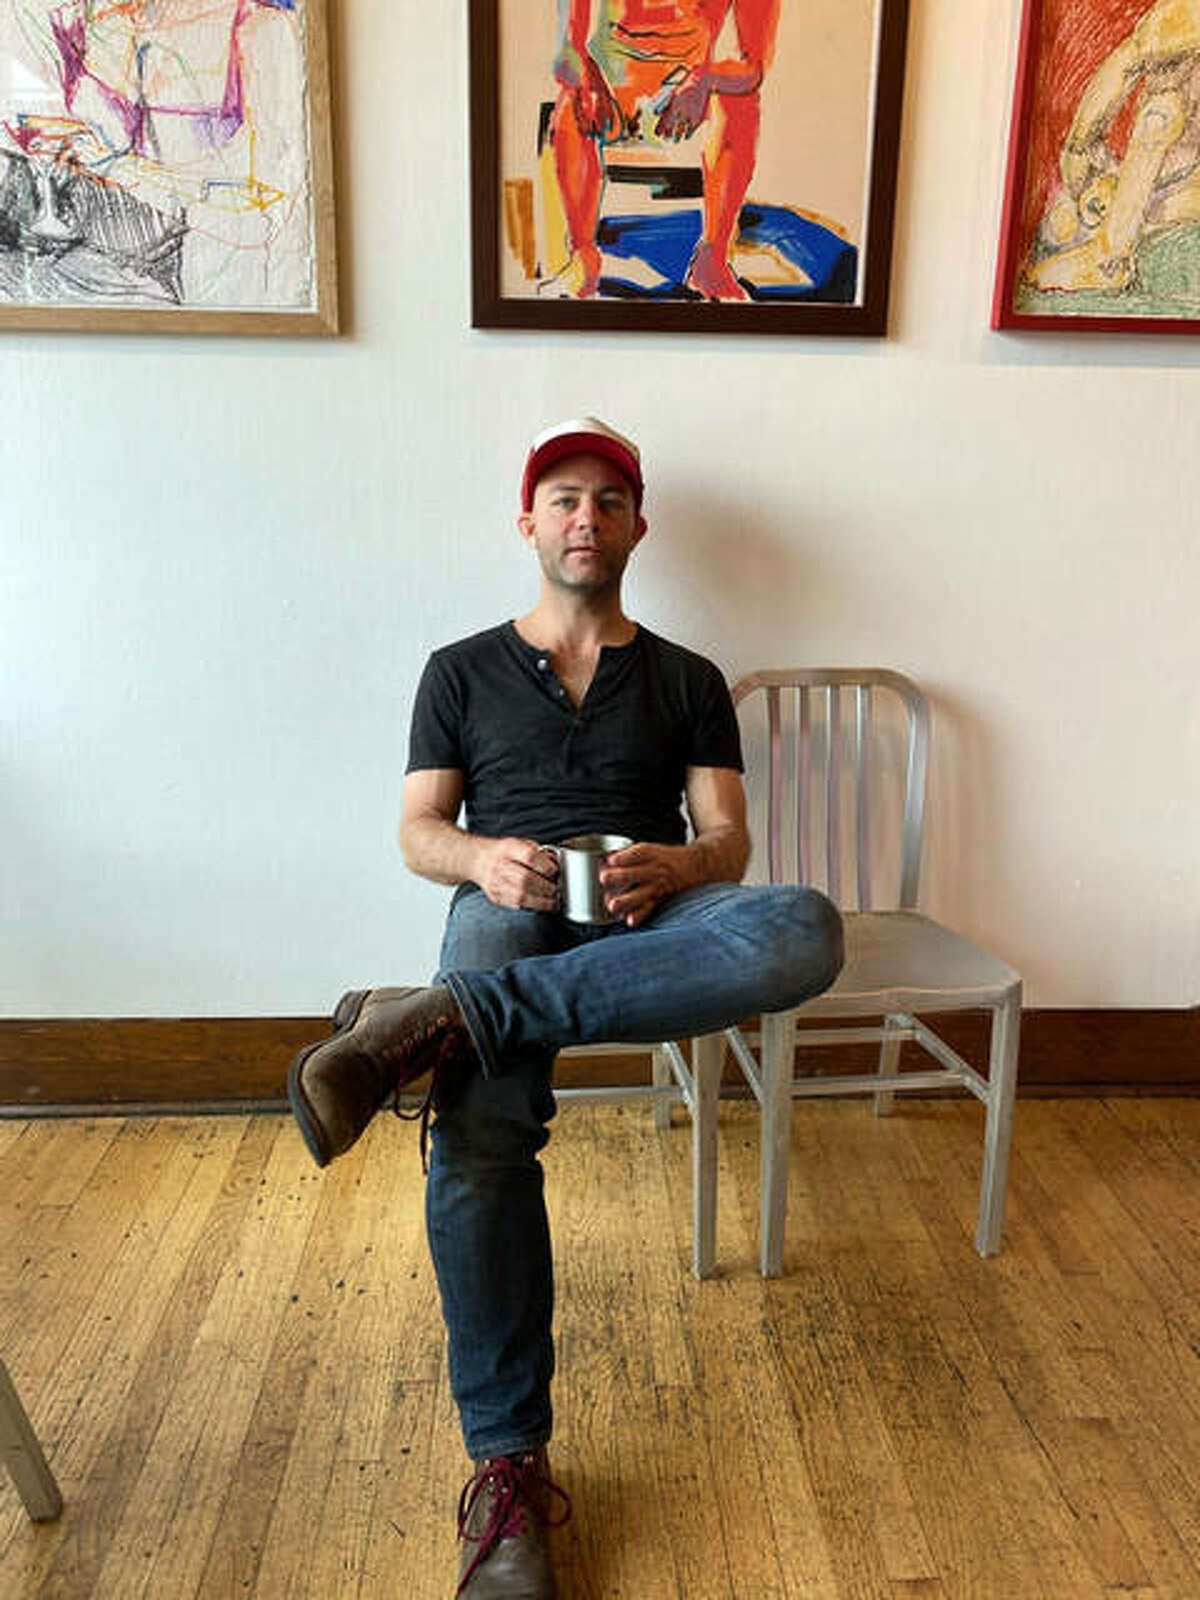 Local artist Chris Conant will have his work on display at Sacred Grounds Cafe through May 30.